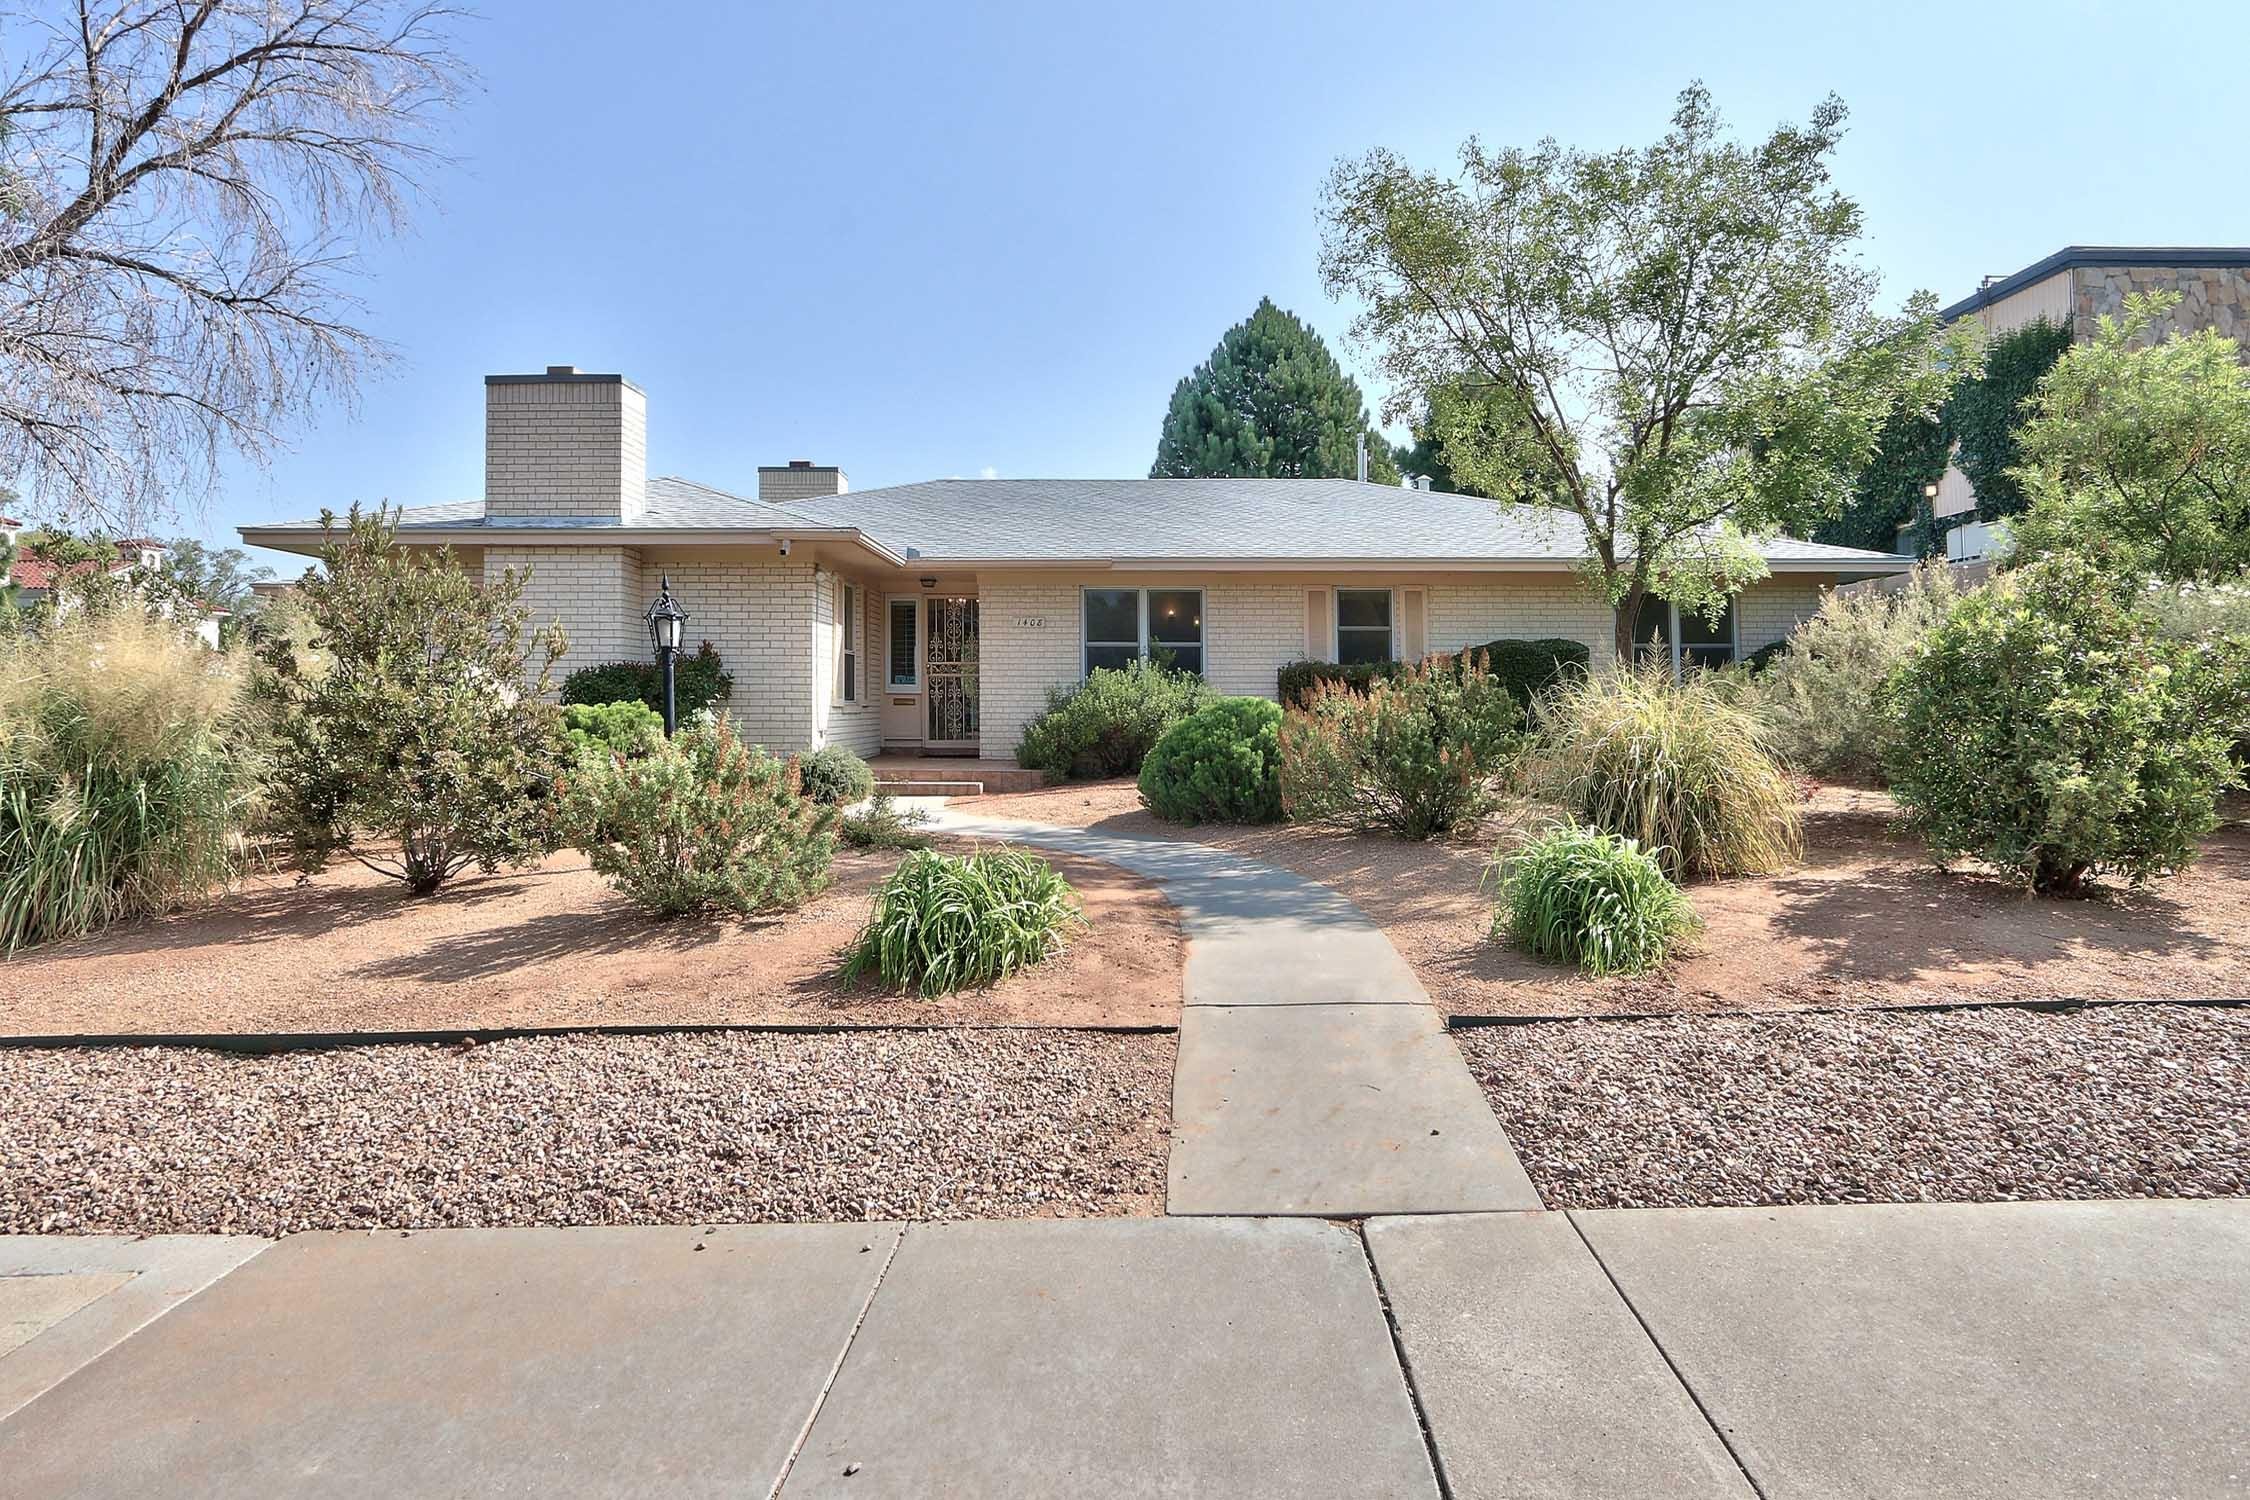 UNM Mid Century classic in lovely Altura Park neighborhood. Mossman built single. Spacious open floor plan with 2 en-suite bedrooms. Professionally designed and landscaped xeric front and side yard. Grassy back is clean slate for buyers kids, pets and big enough for a pool. Roof replaced 9/2020. Some newer mechanical systems.  Updated kitchen has quartz and hardwood counters, St. Charles cabinets, Sub zero and large dining nook. Plantation shutters thought out the home. Close to campus, downtown and hospitals in a highly desirable area.